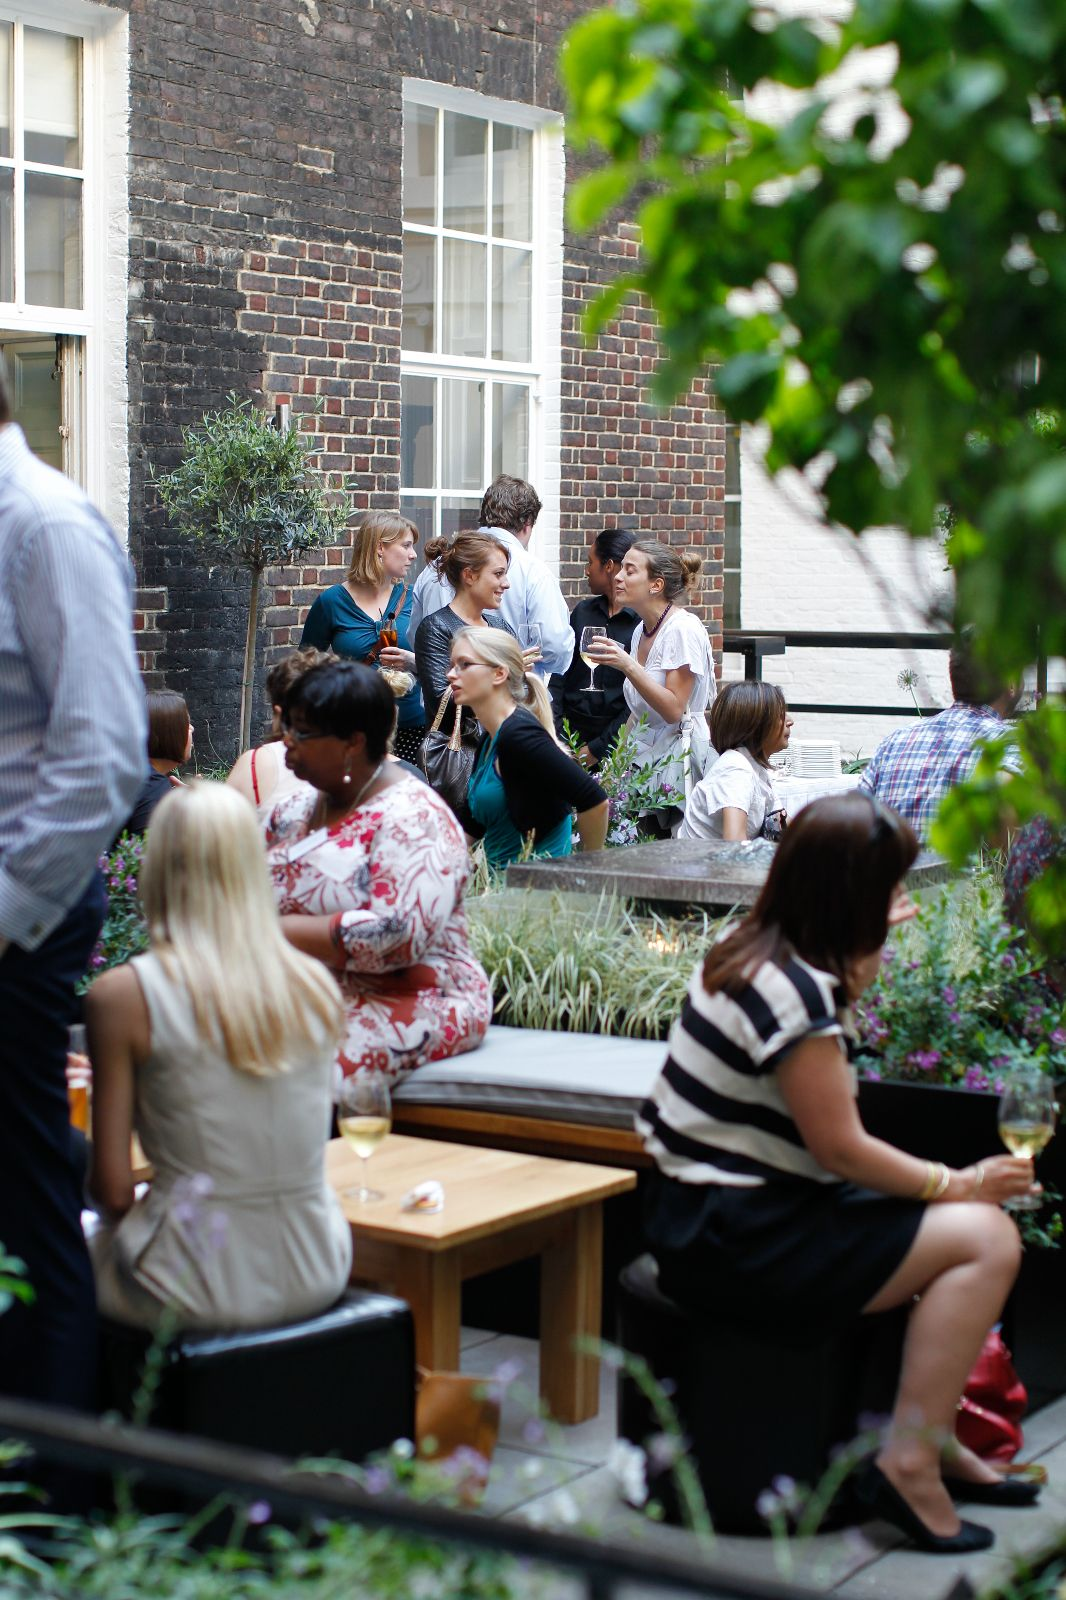 Guests relaxing in our Garden Terrace during a summer drinks reception.